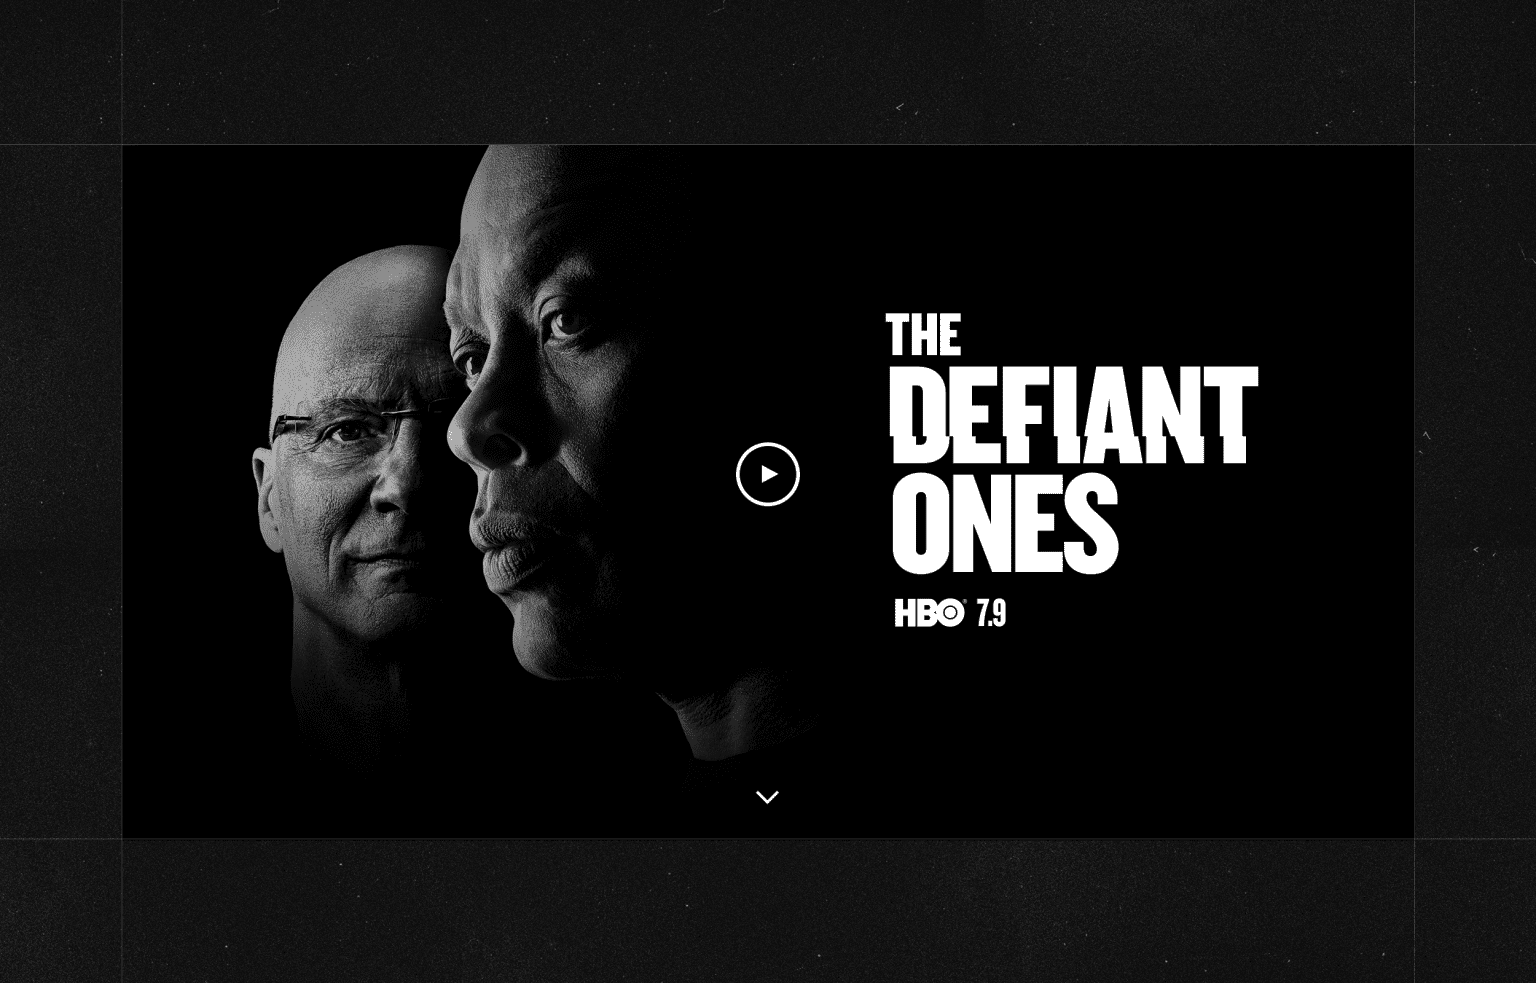 HBO, The Defiant Ones, official website.